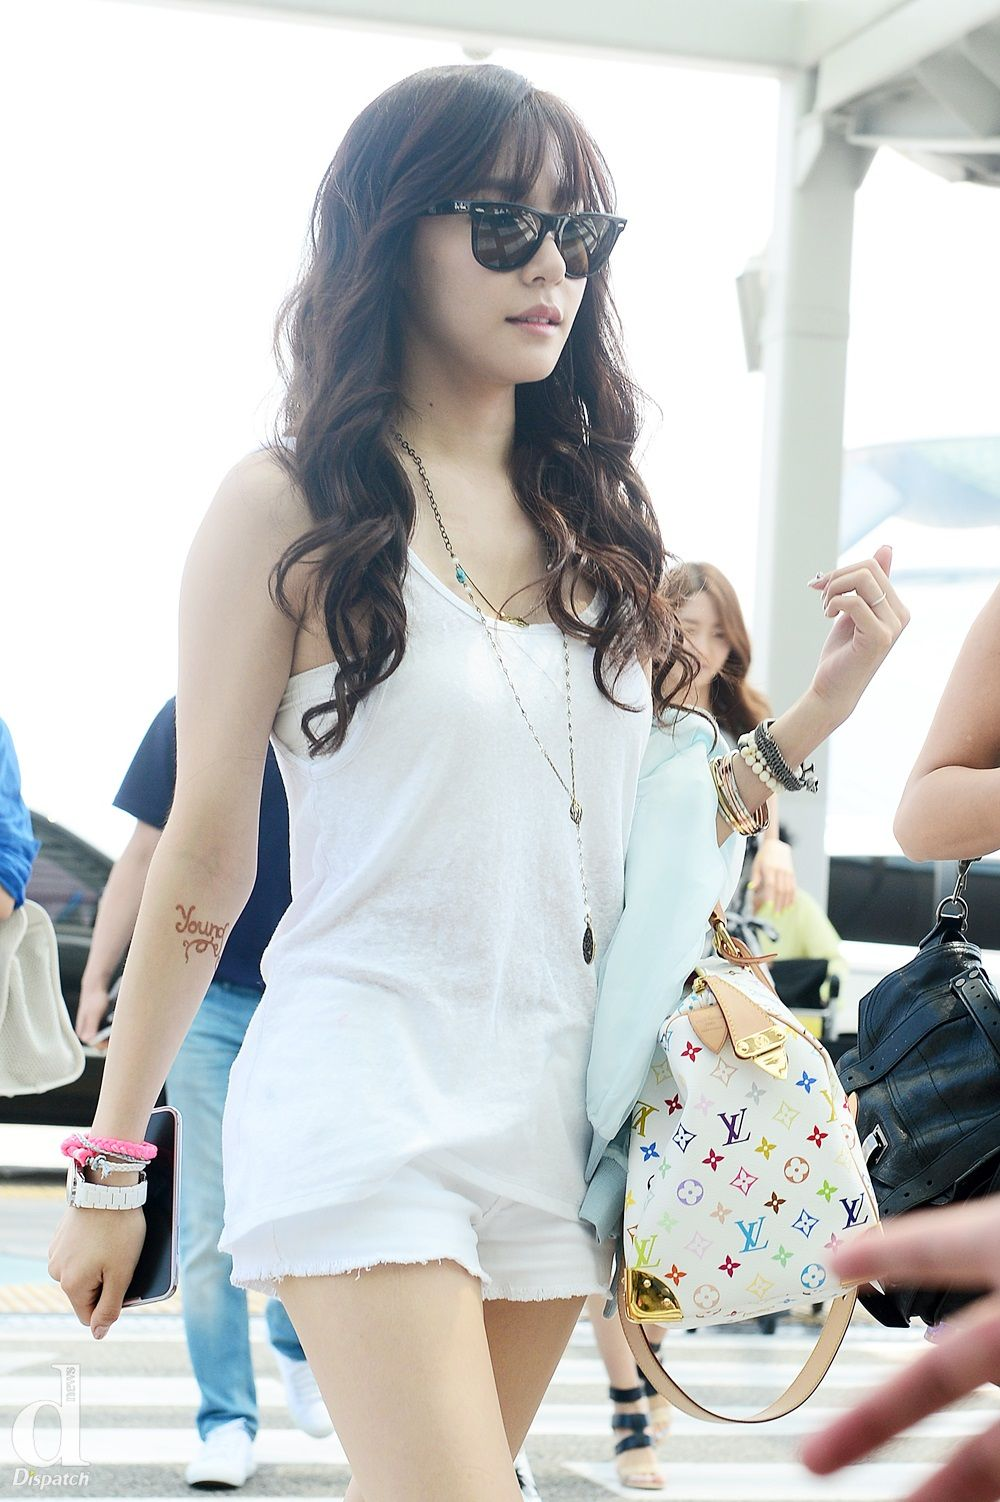 snsd tiffany hwang airport fashion young tattoo kpop